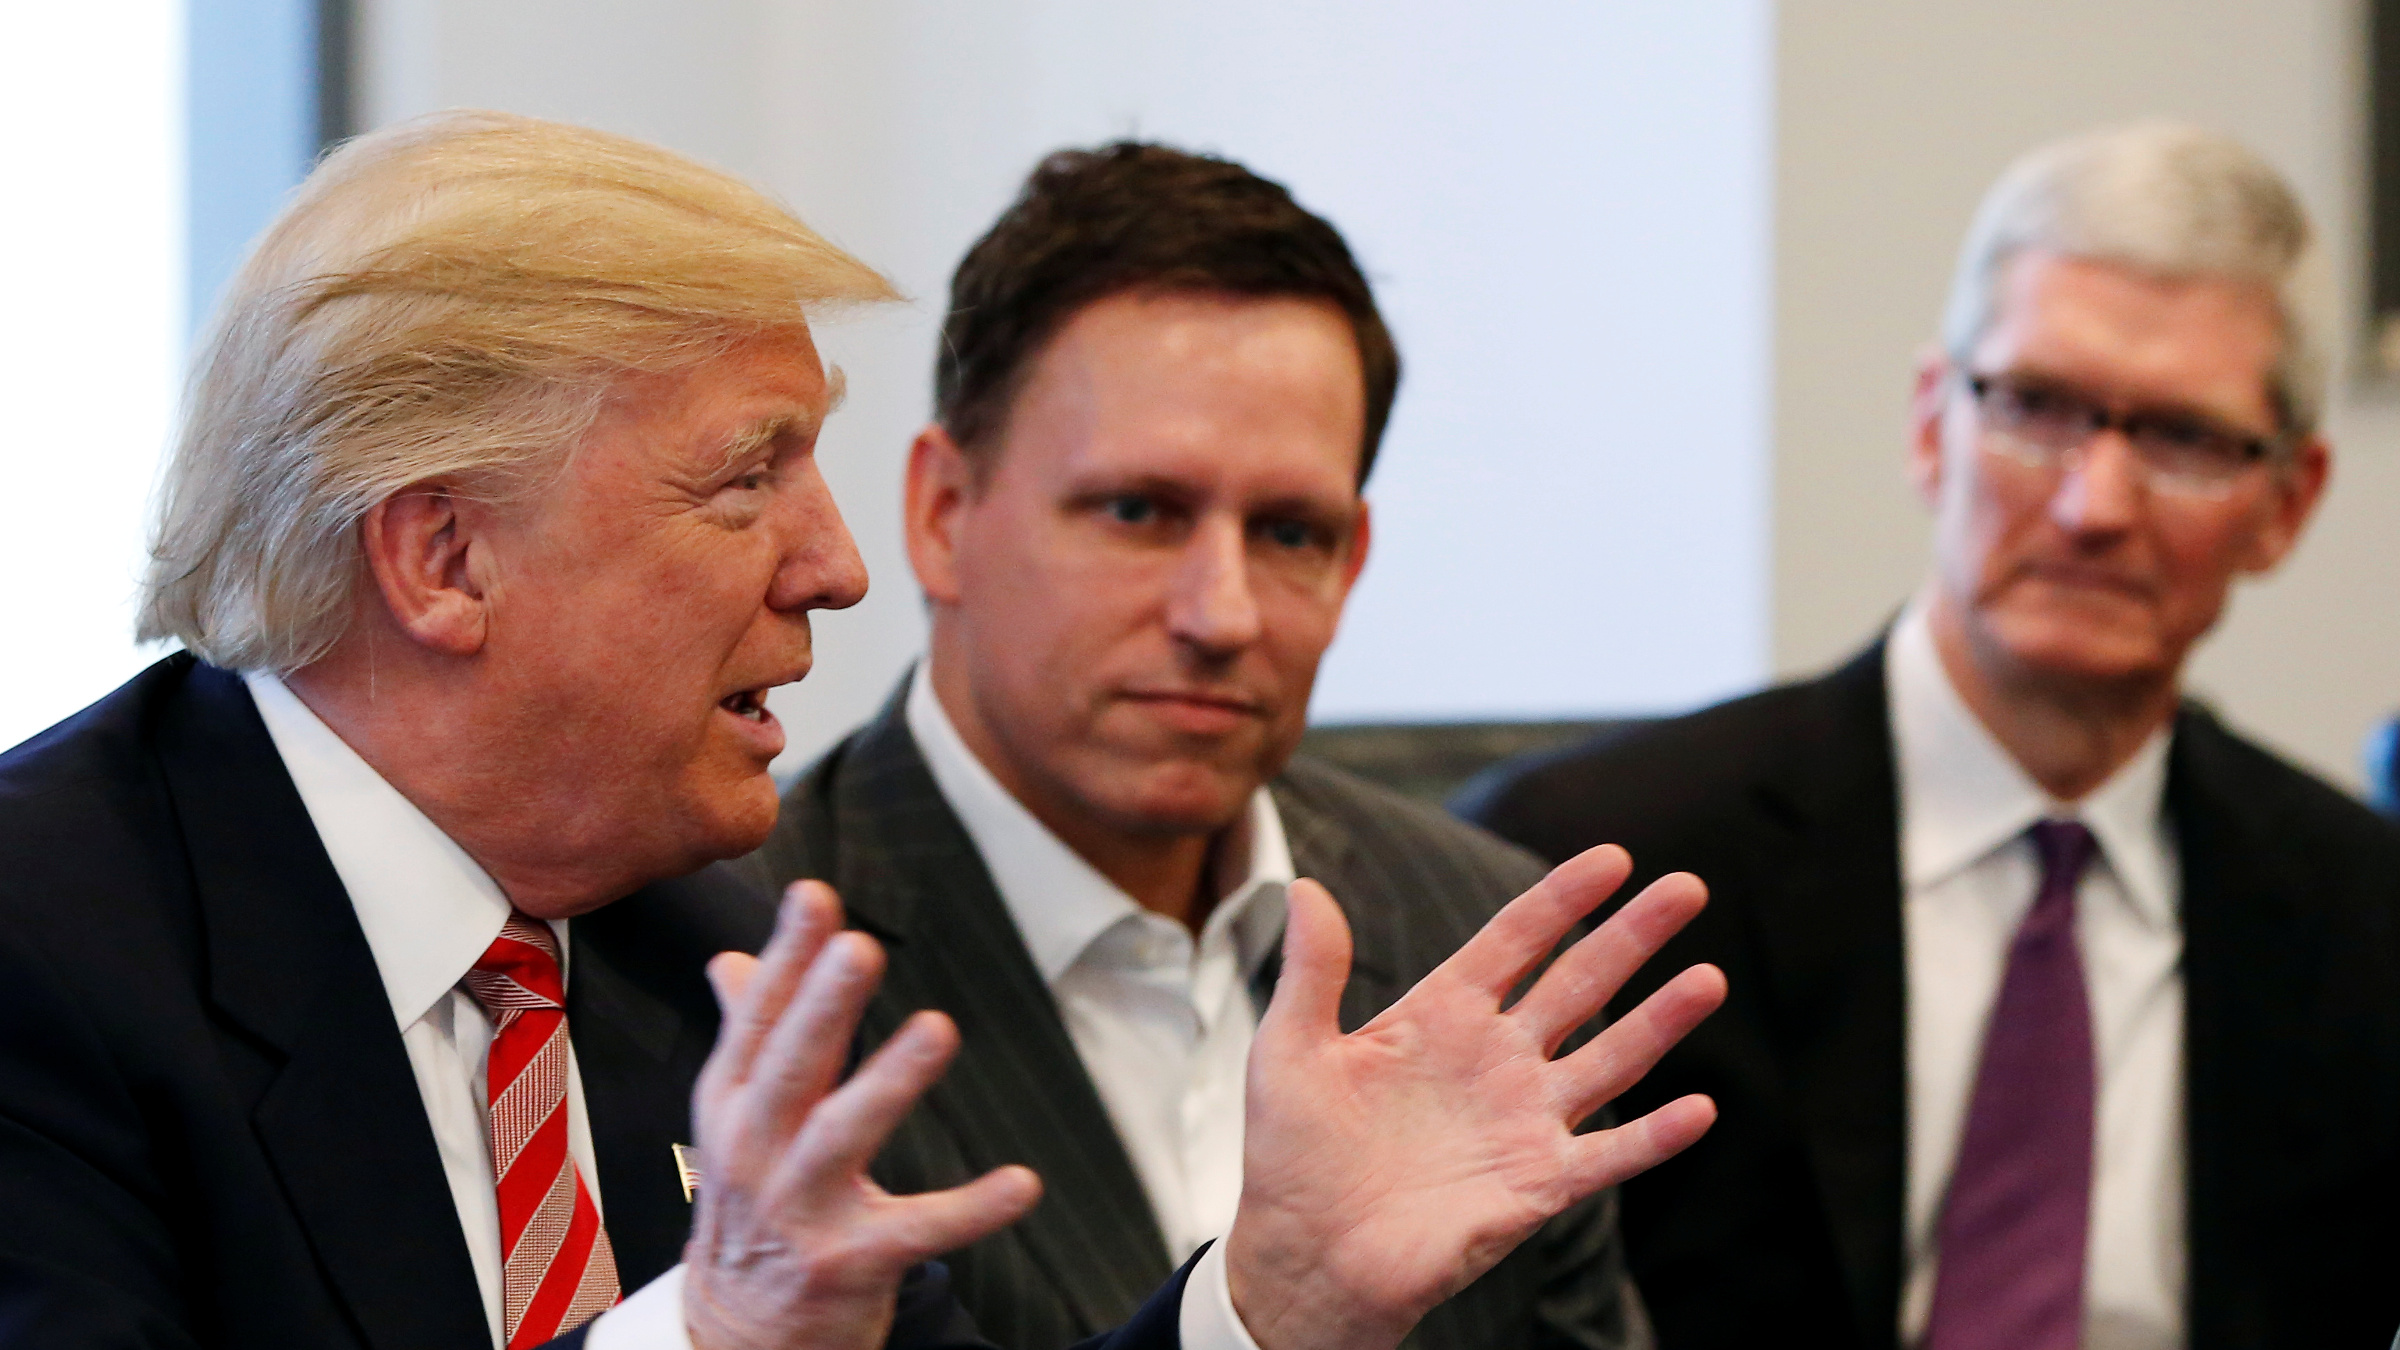 U.S. President-elect Donald Trump speaks as PayPal co-founder and Facebook board member Peter Thiel (C) and Apple Inc CEO Tim Cook look on during a meeting with technology leaders at Trump Tower in New York U.S., December 14, 2016.